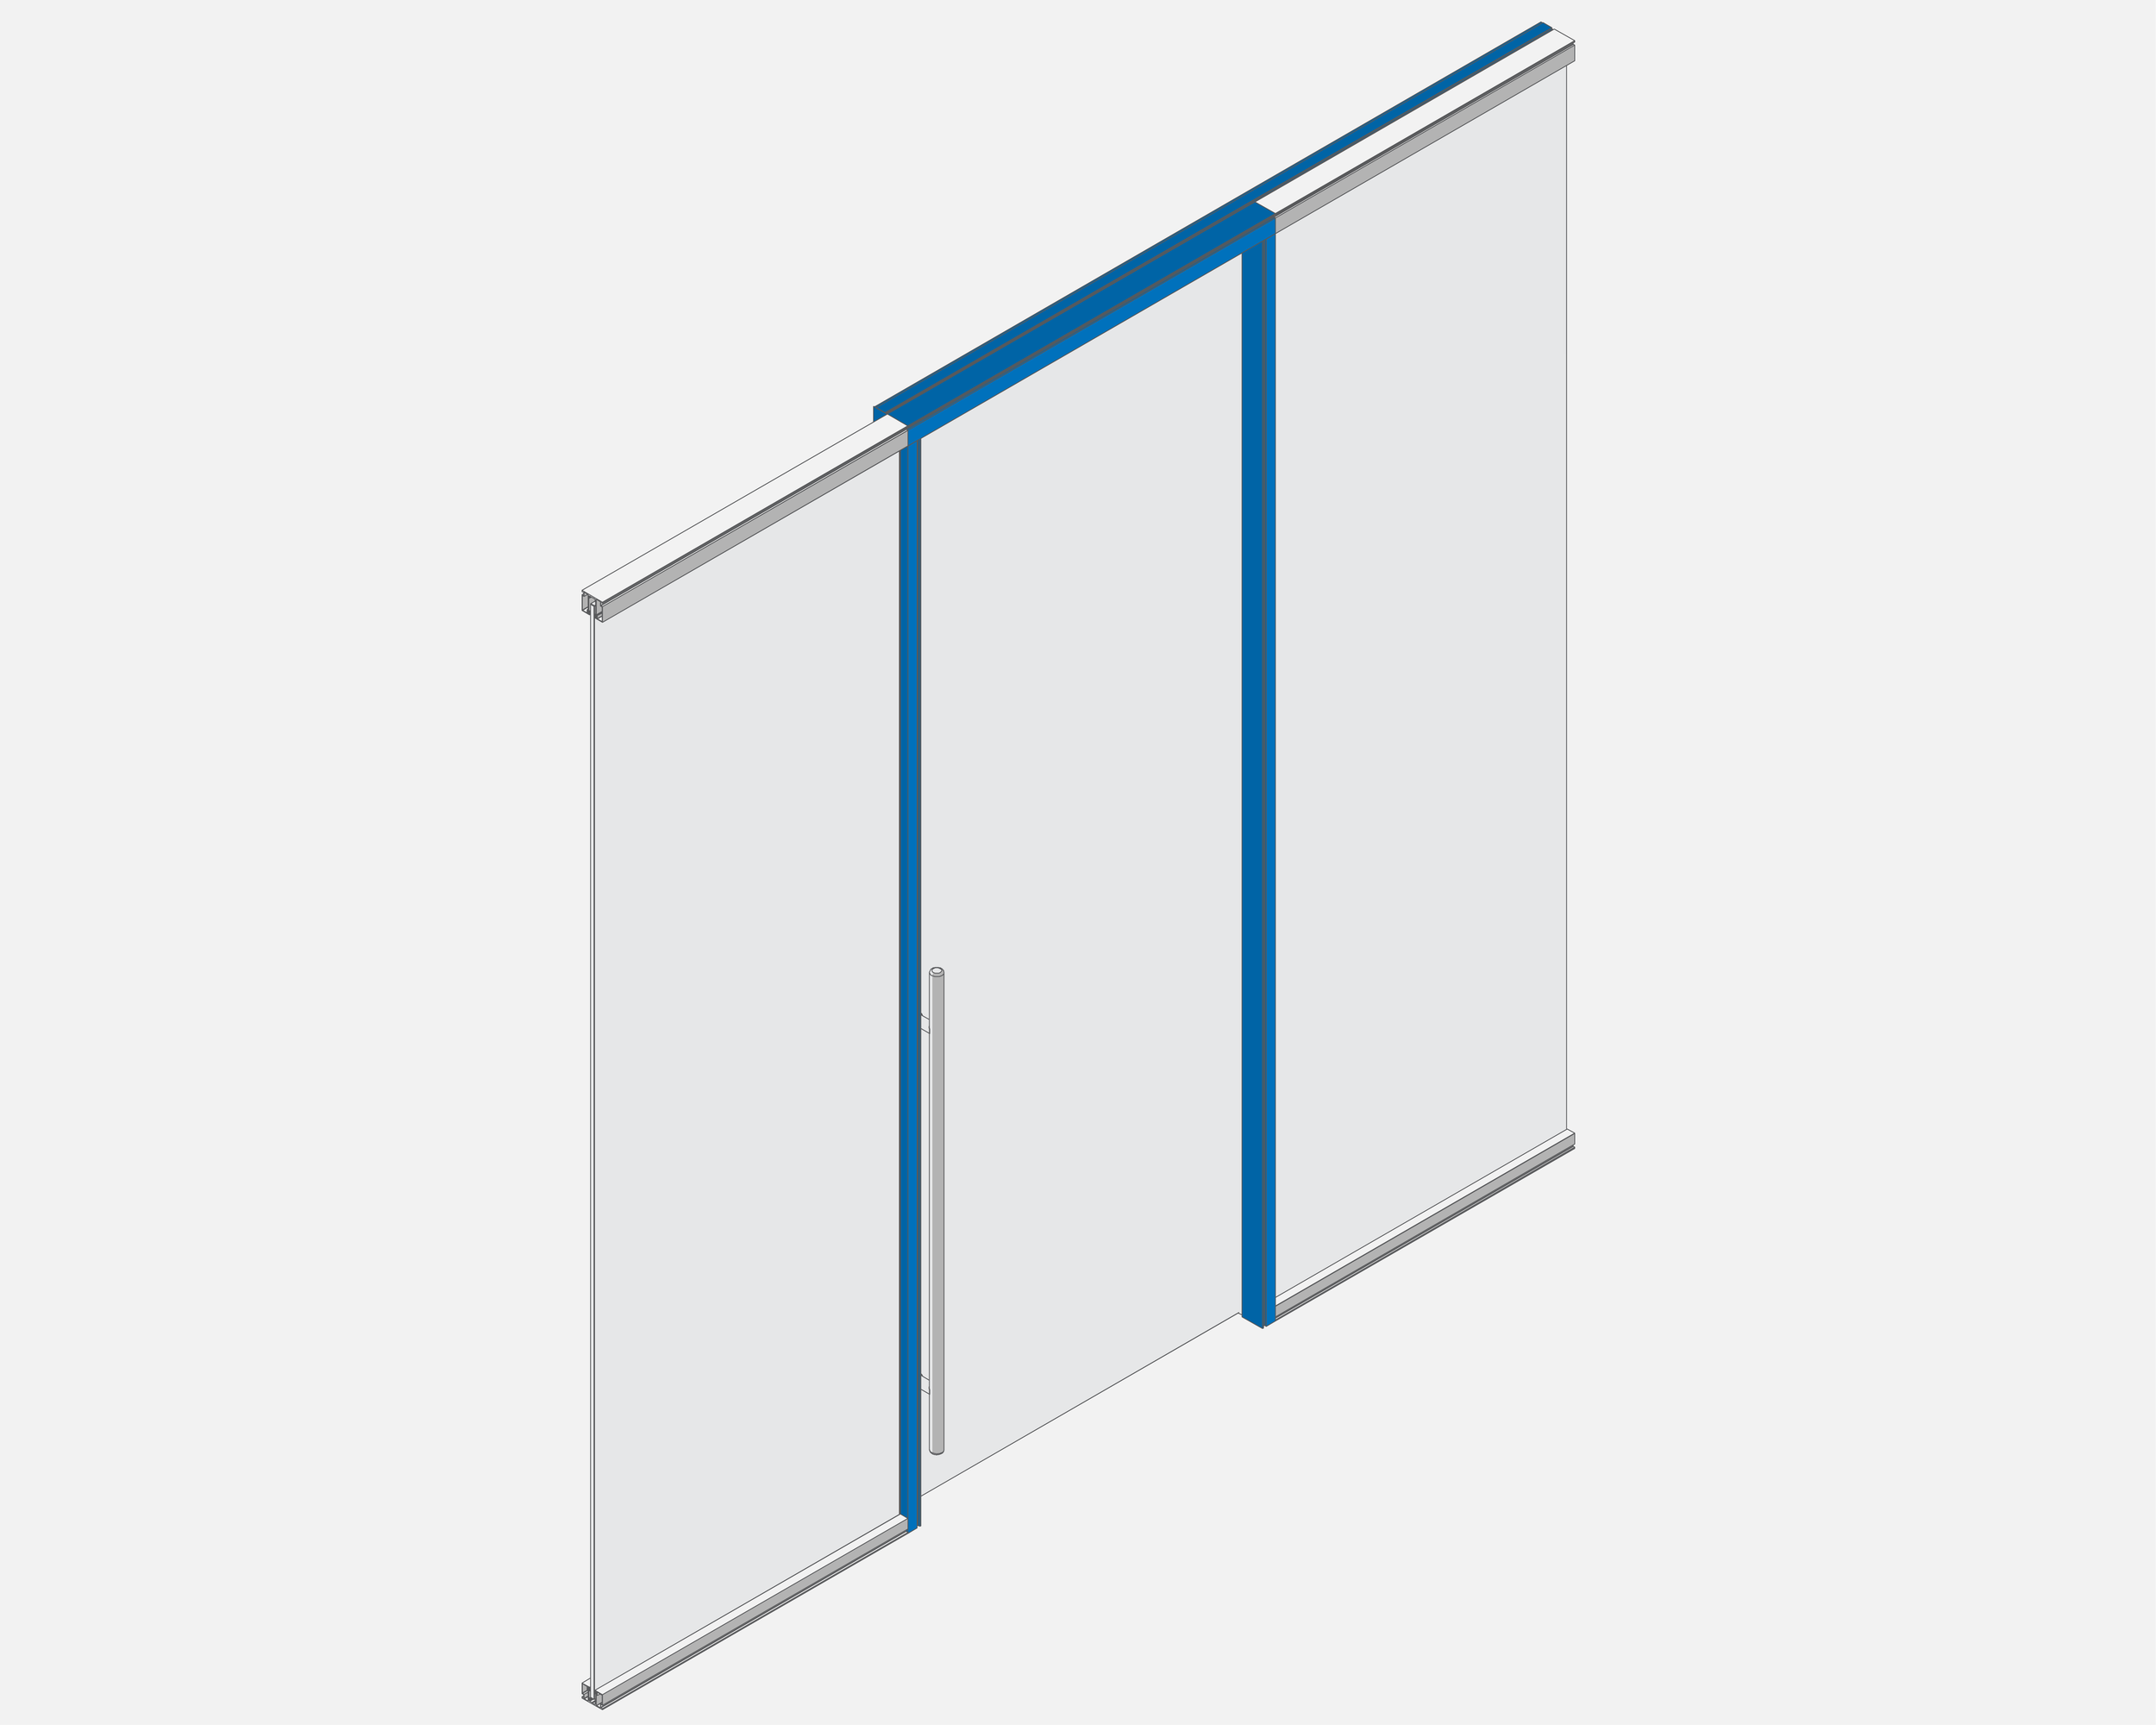 Sliding Door Kit   Kit offered in standard 40 inch width, and heights up to 9 feet.  Included: Cut to height door surround / Slide mechanism and housing / Door retention base / Brush gaskets  Designed for 3/8 inch glass